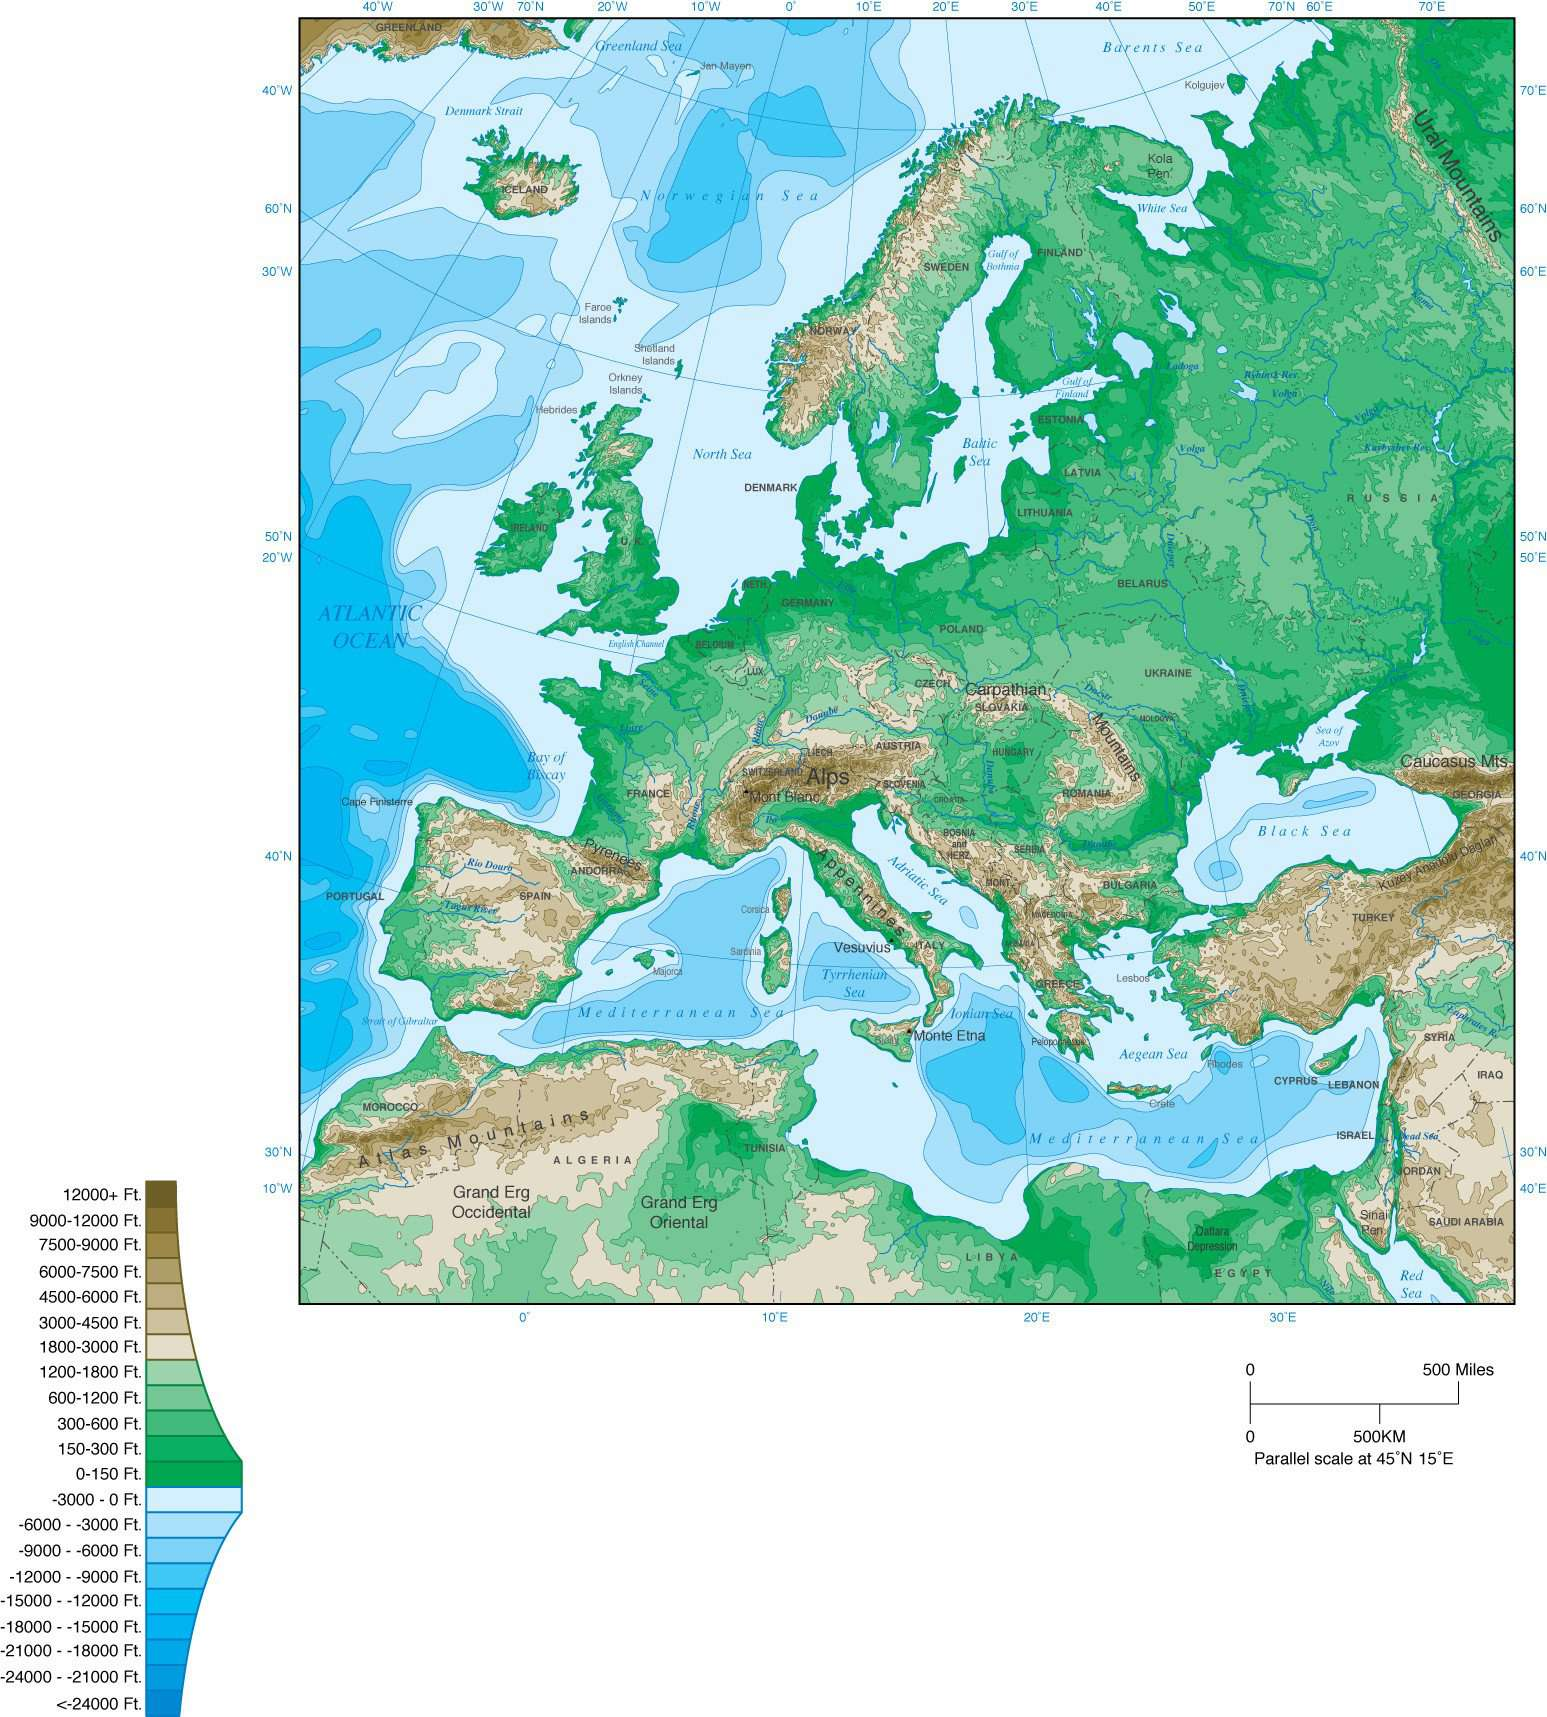 Europe Map with Contours